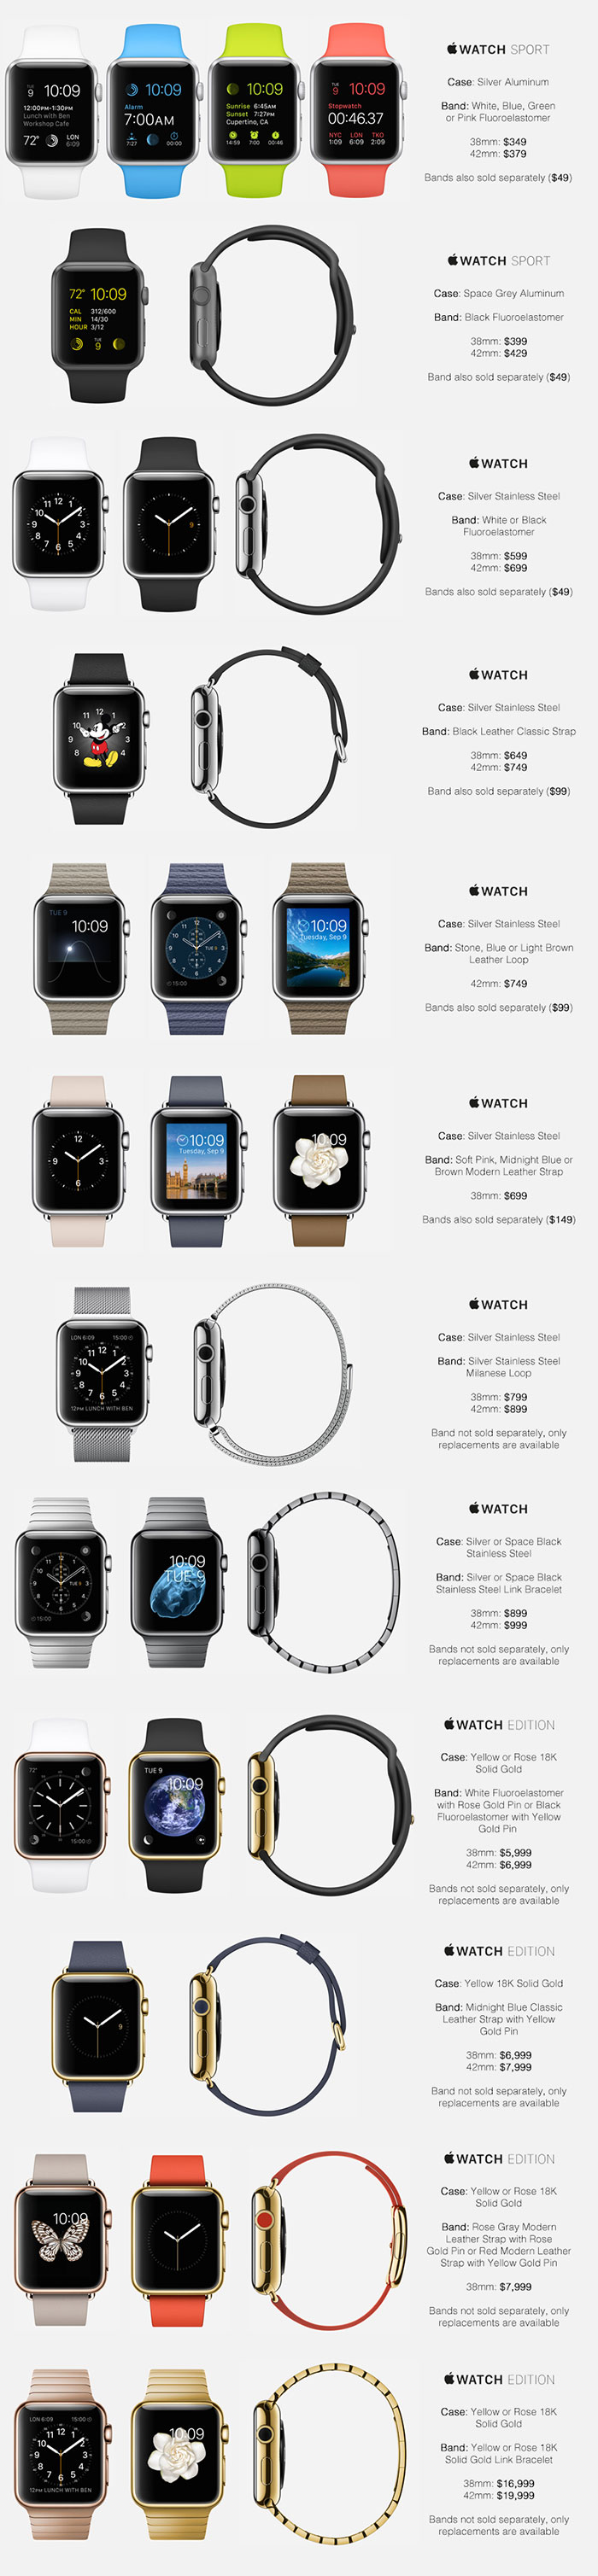 apple-watch-preise